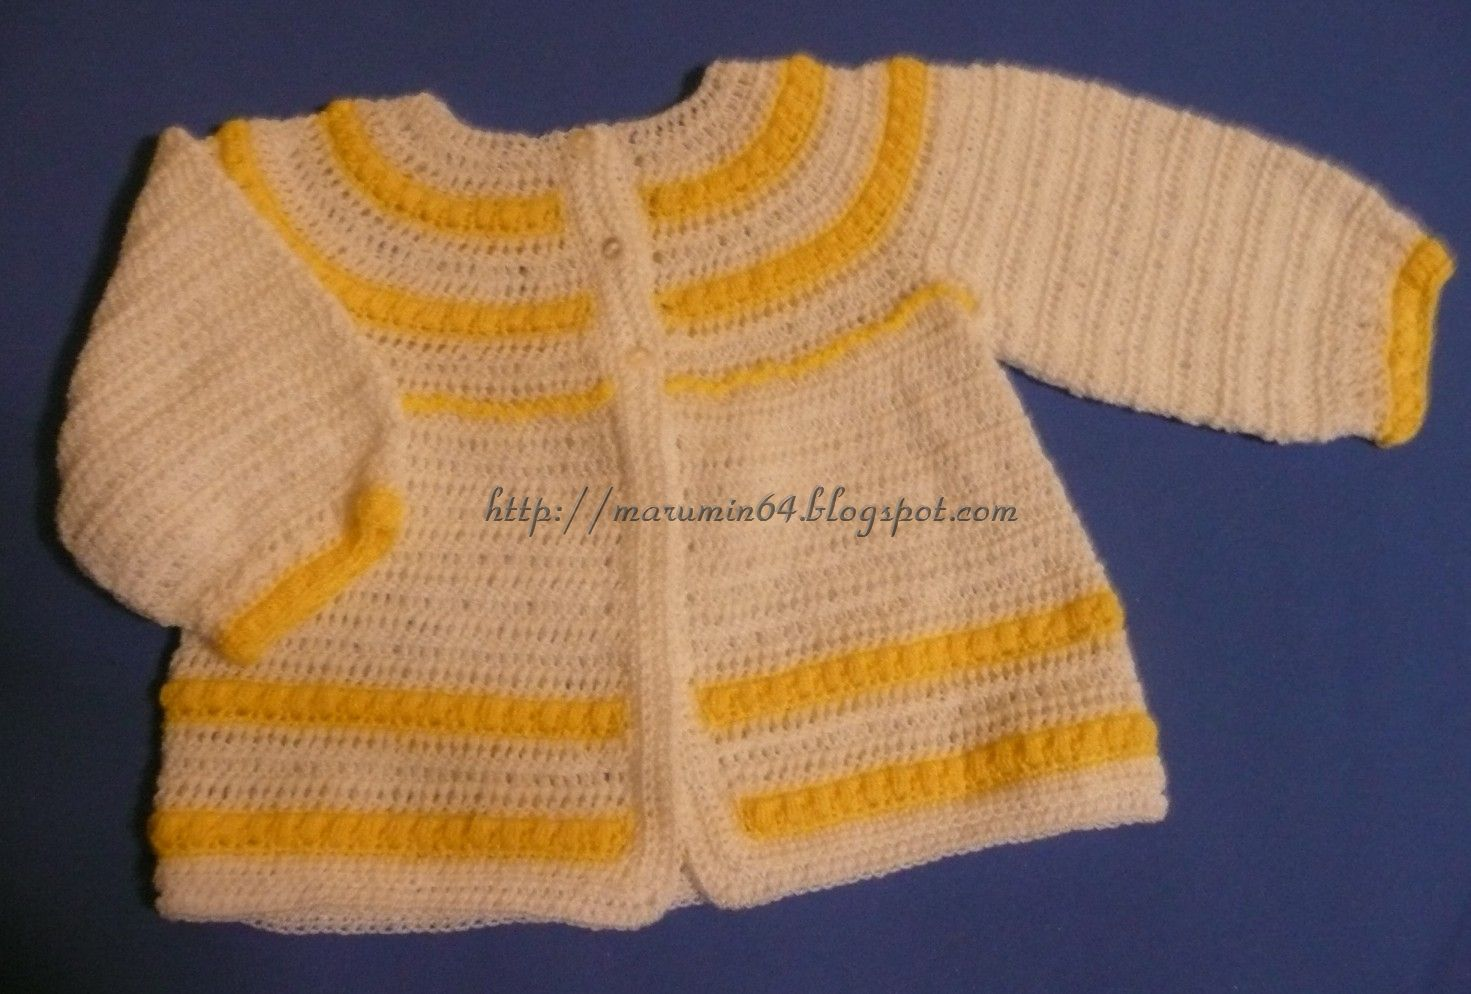 Chaqueta CR Blanco con Punto Bolita / RY Baby Jacket with Yellow Puff